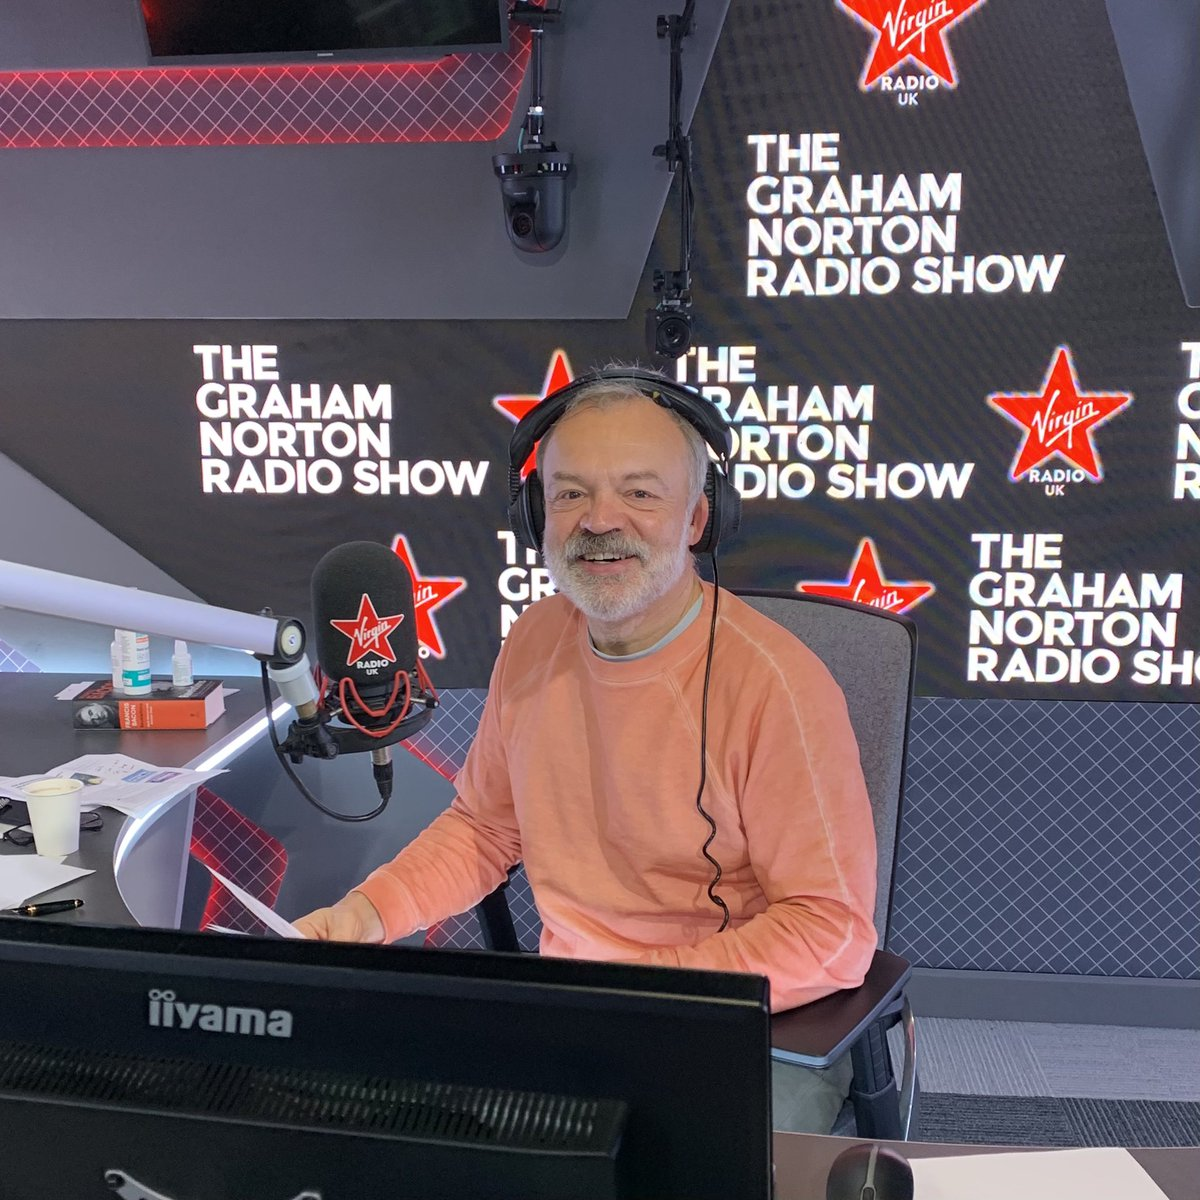 Graham's back for round two!   Tune in for chats with some fabulous guests - plus @grahnort and @mariamcerlane will be helping you solve your problems in Graham's Guide 💭  🔈   #TheGrahamNortonRadioShow